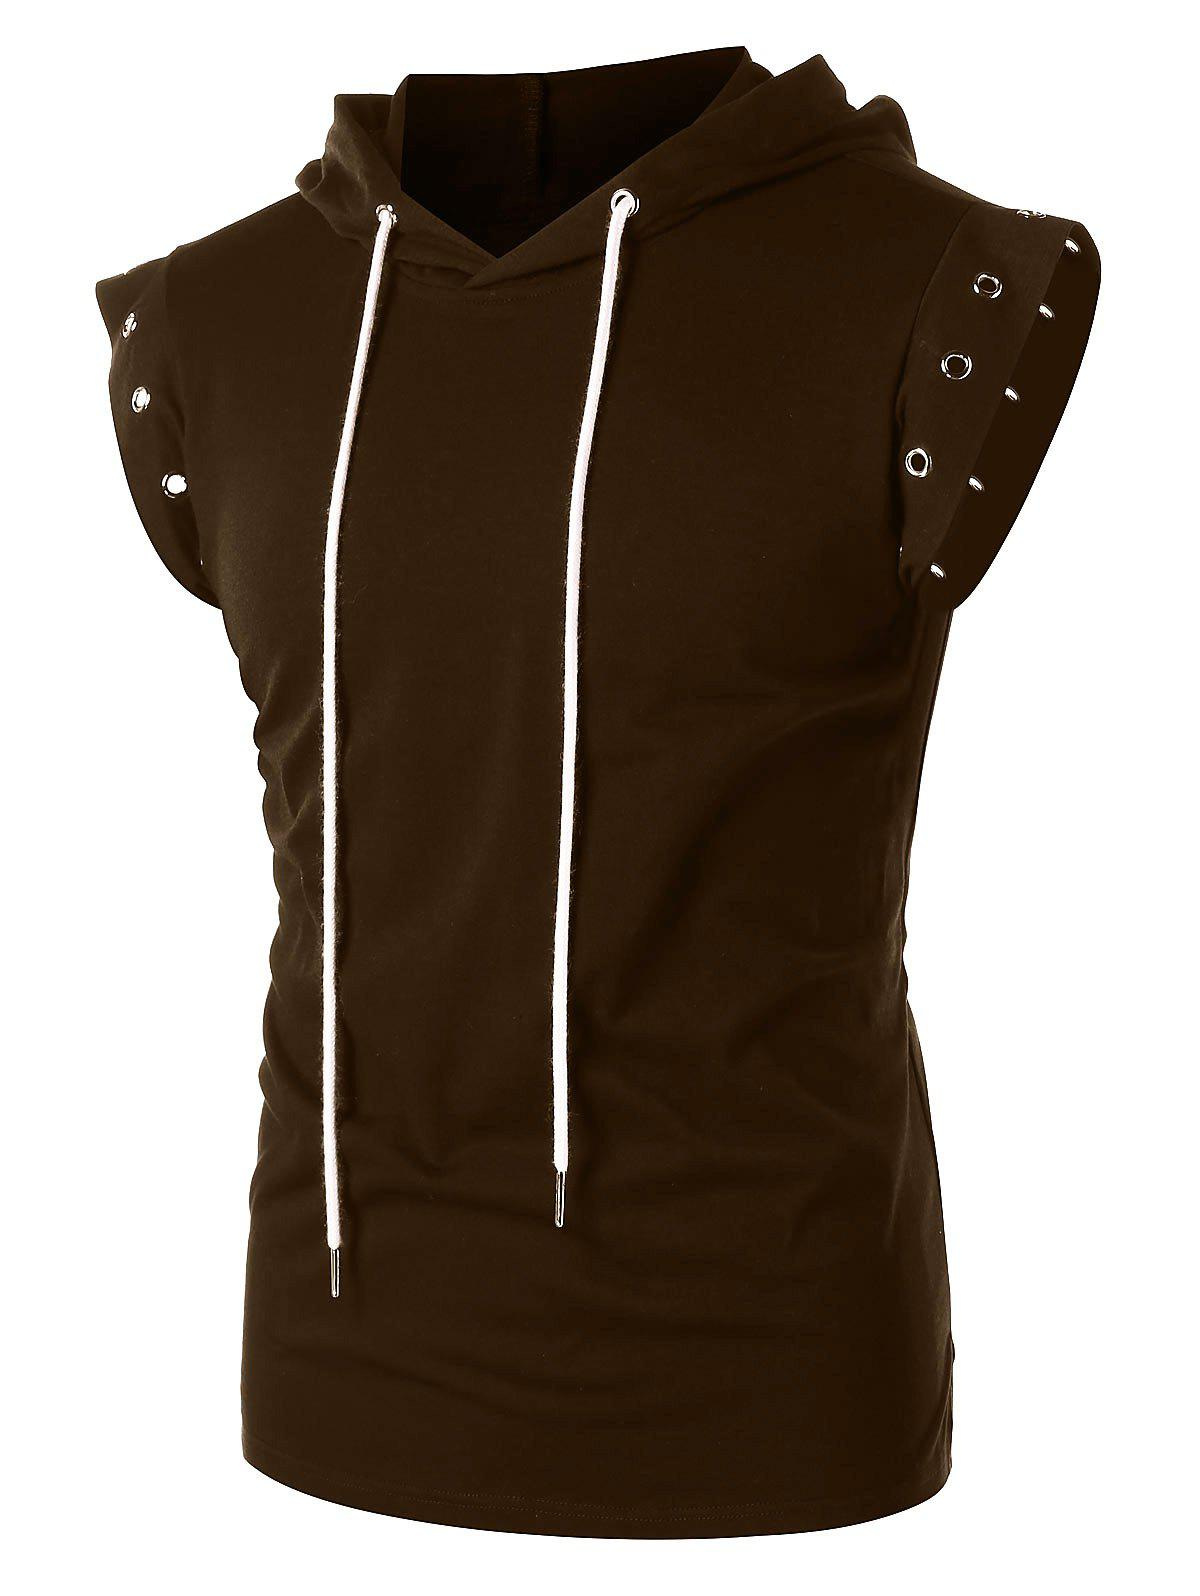 Drawstring Lace Up Solid Color Sleeveless Hoodie - COFFEE L